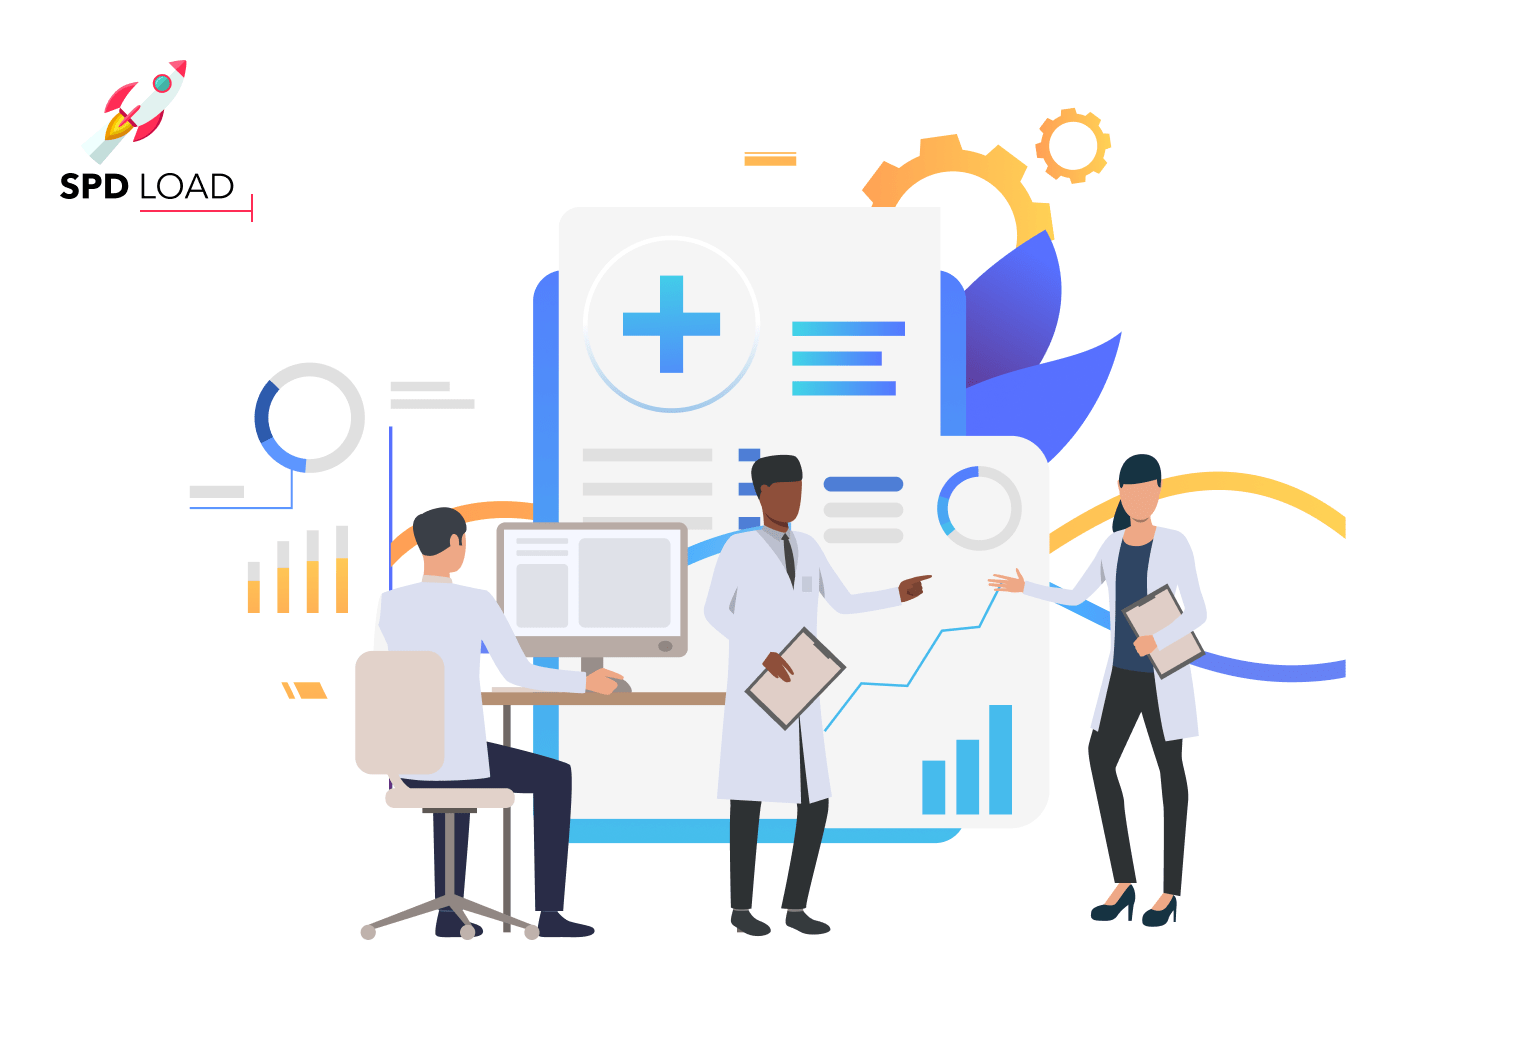 SpdLoad prepared an in-depth guide on how to's and cost of medical website development